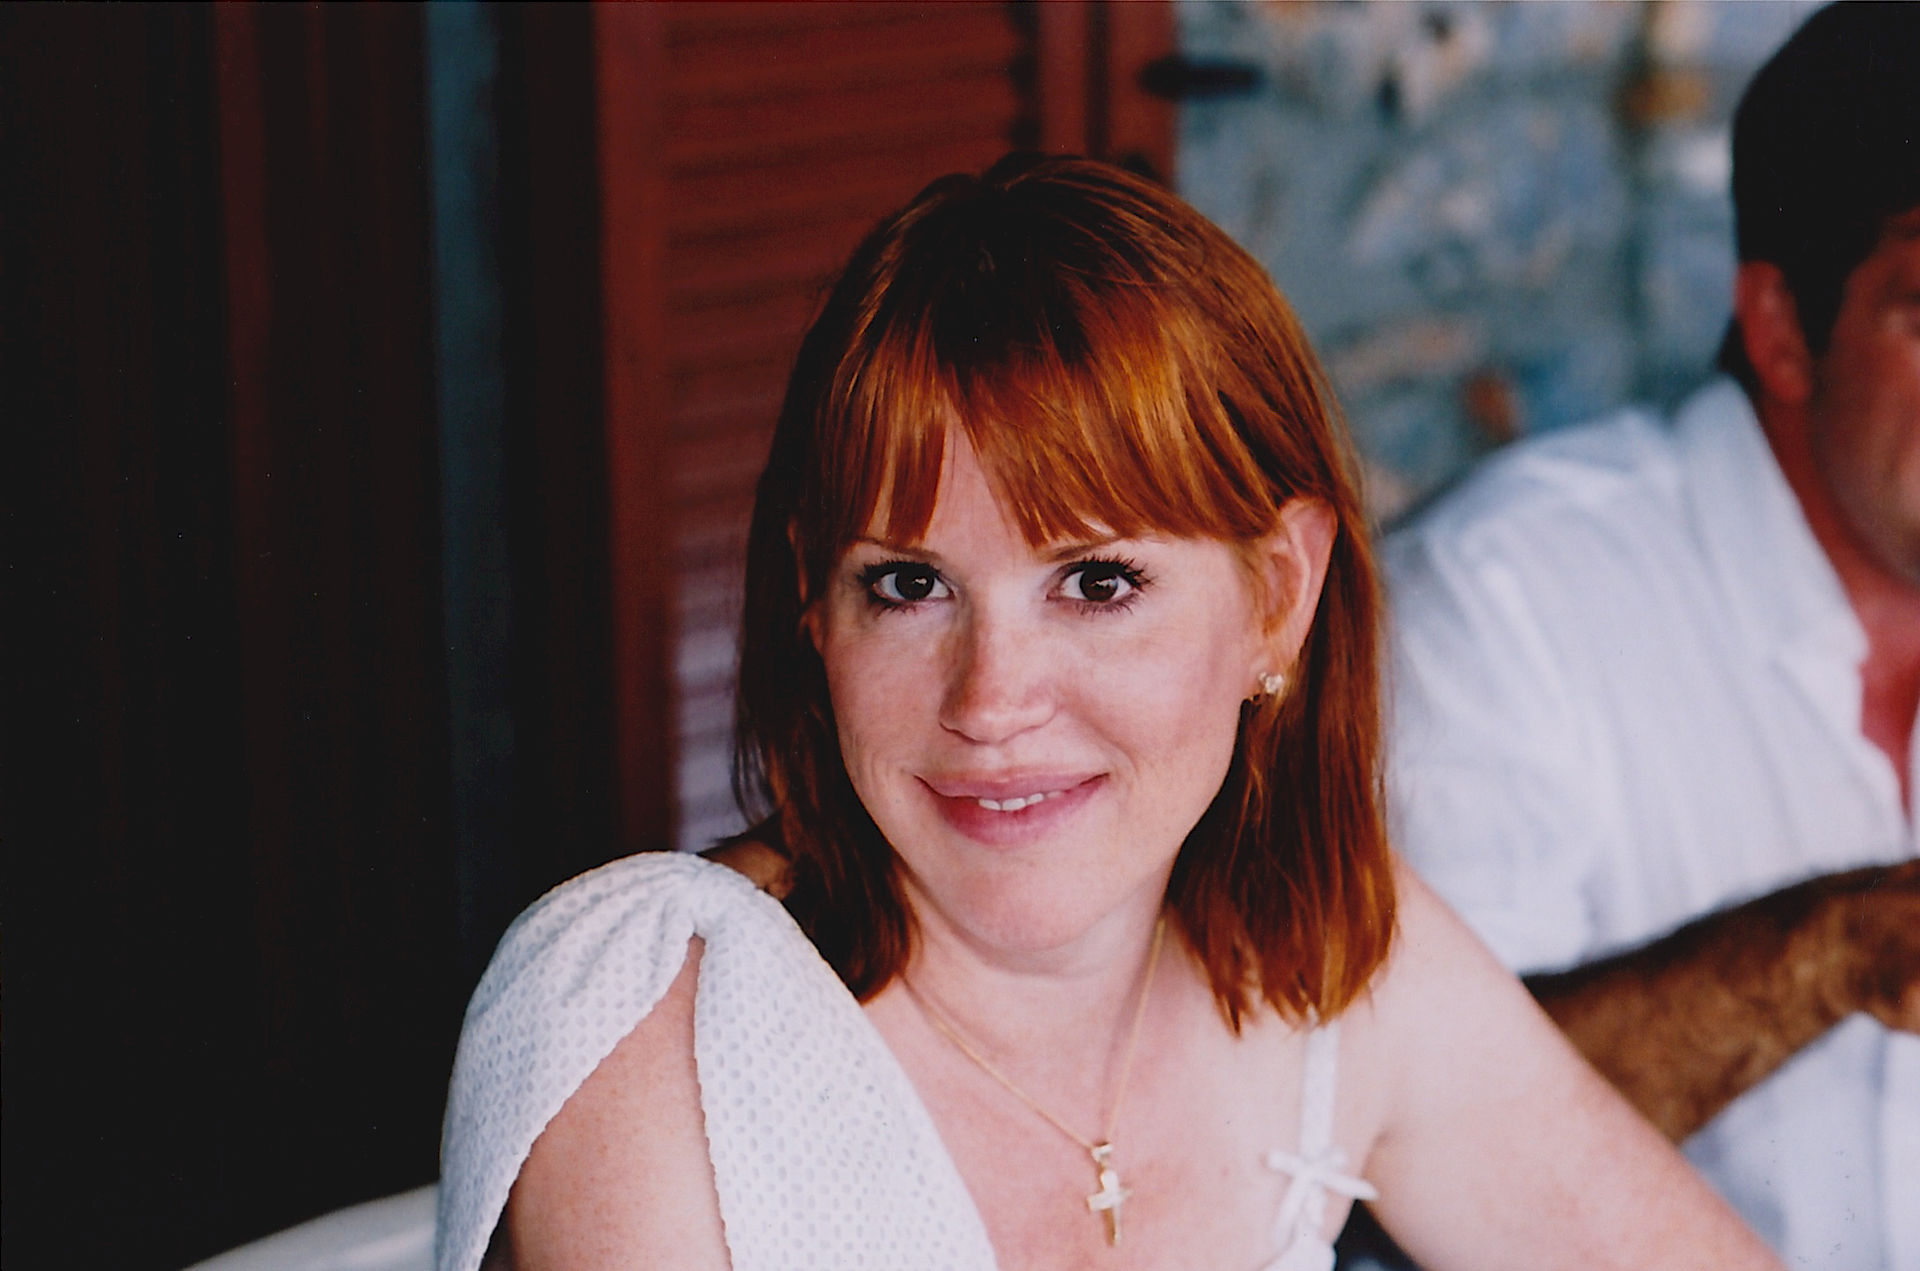 Photo of Molly Ringwald: American actress, singer, dancer, and author